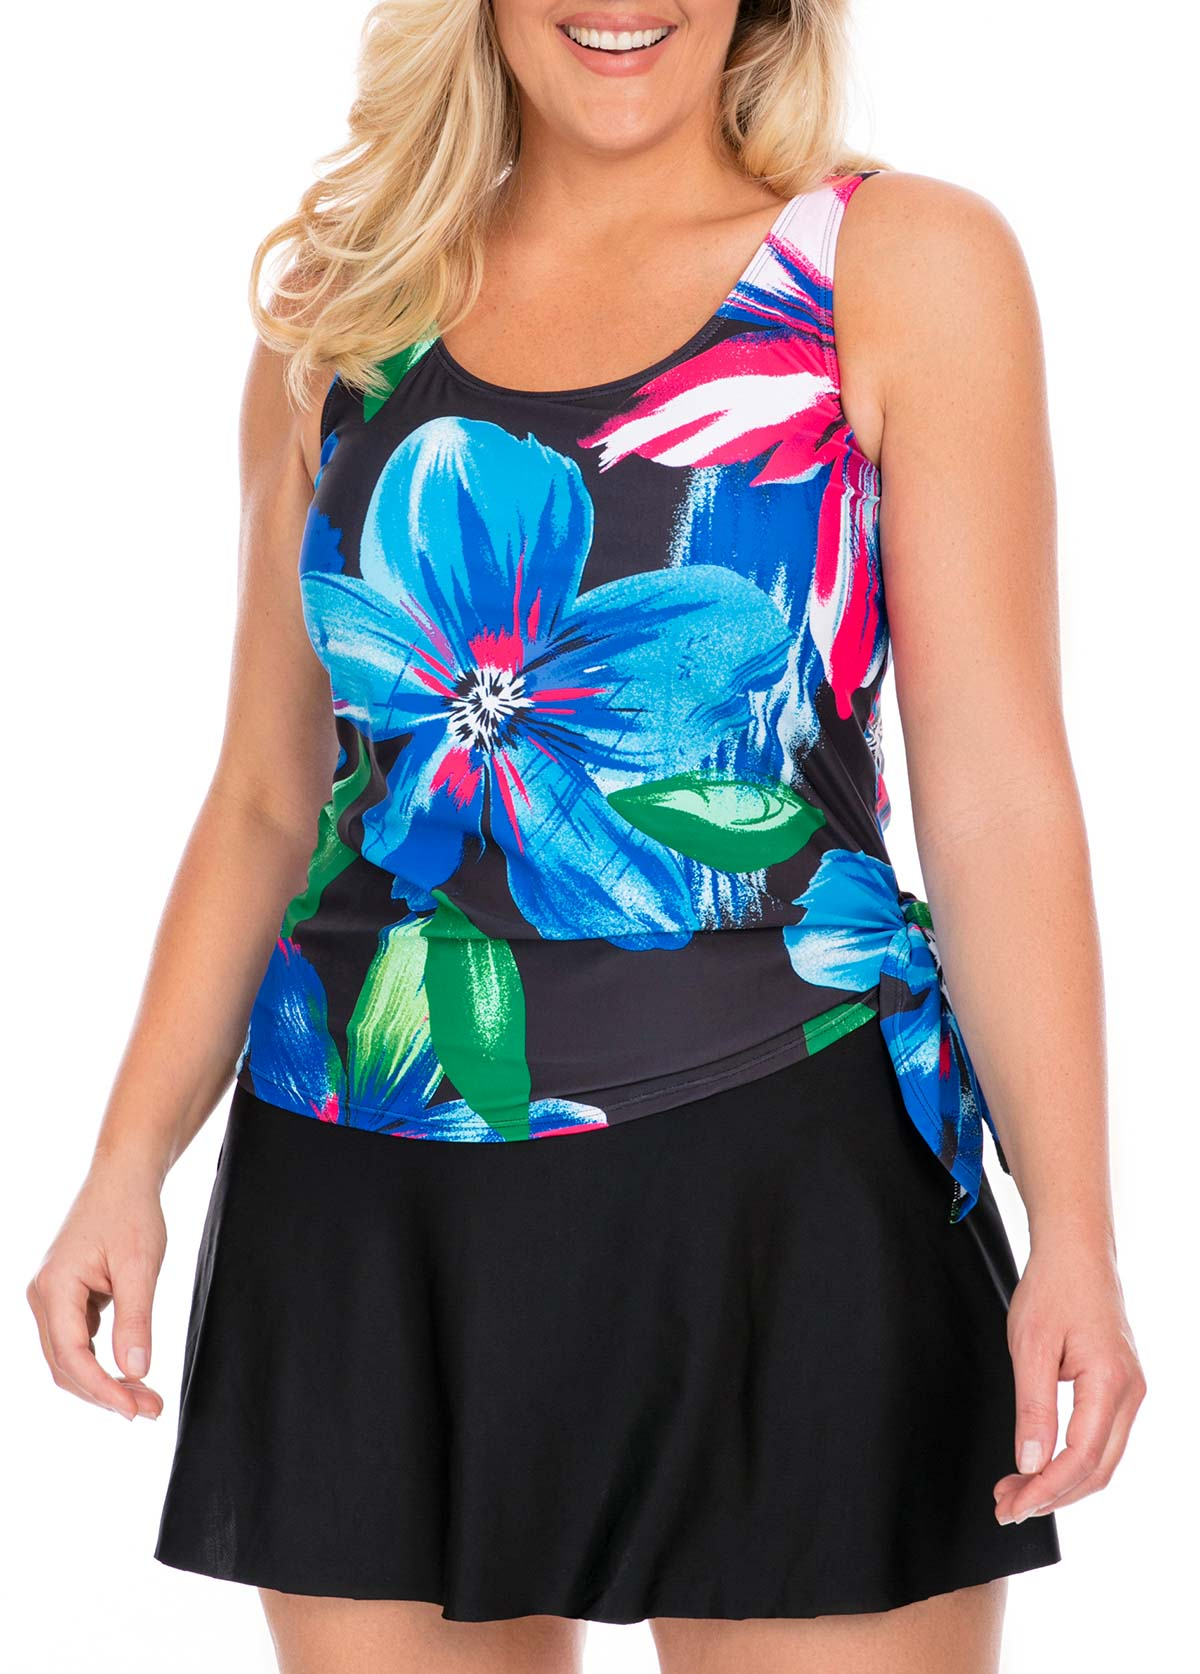 Plus Size Tie Side Tankini Top and Pantskirt